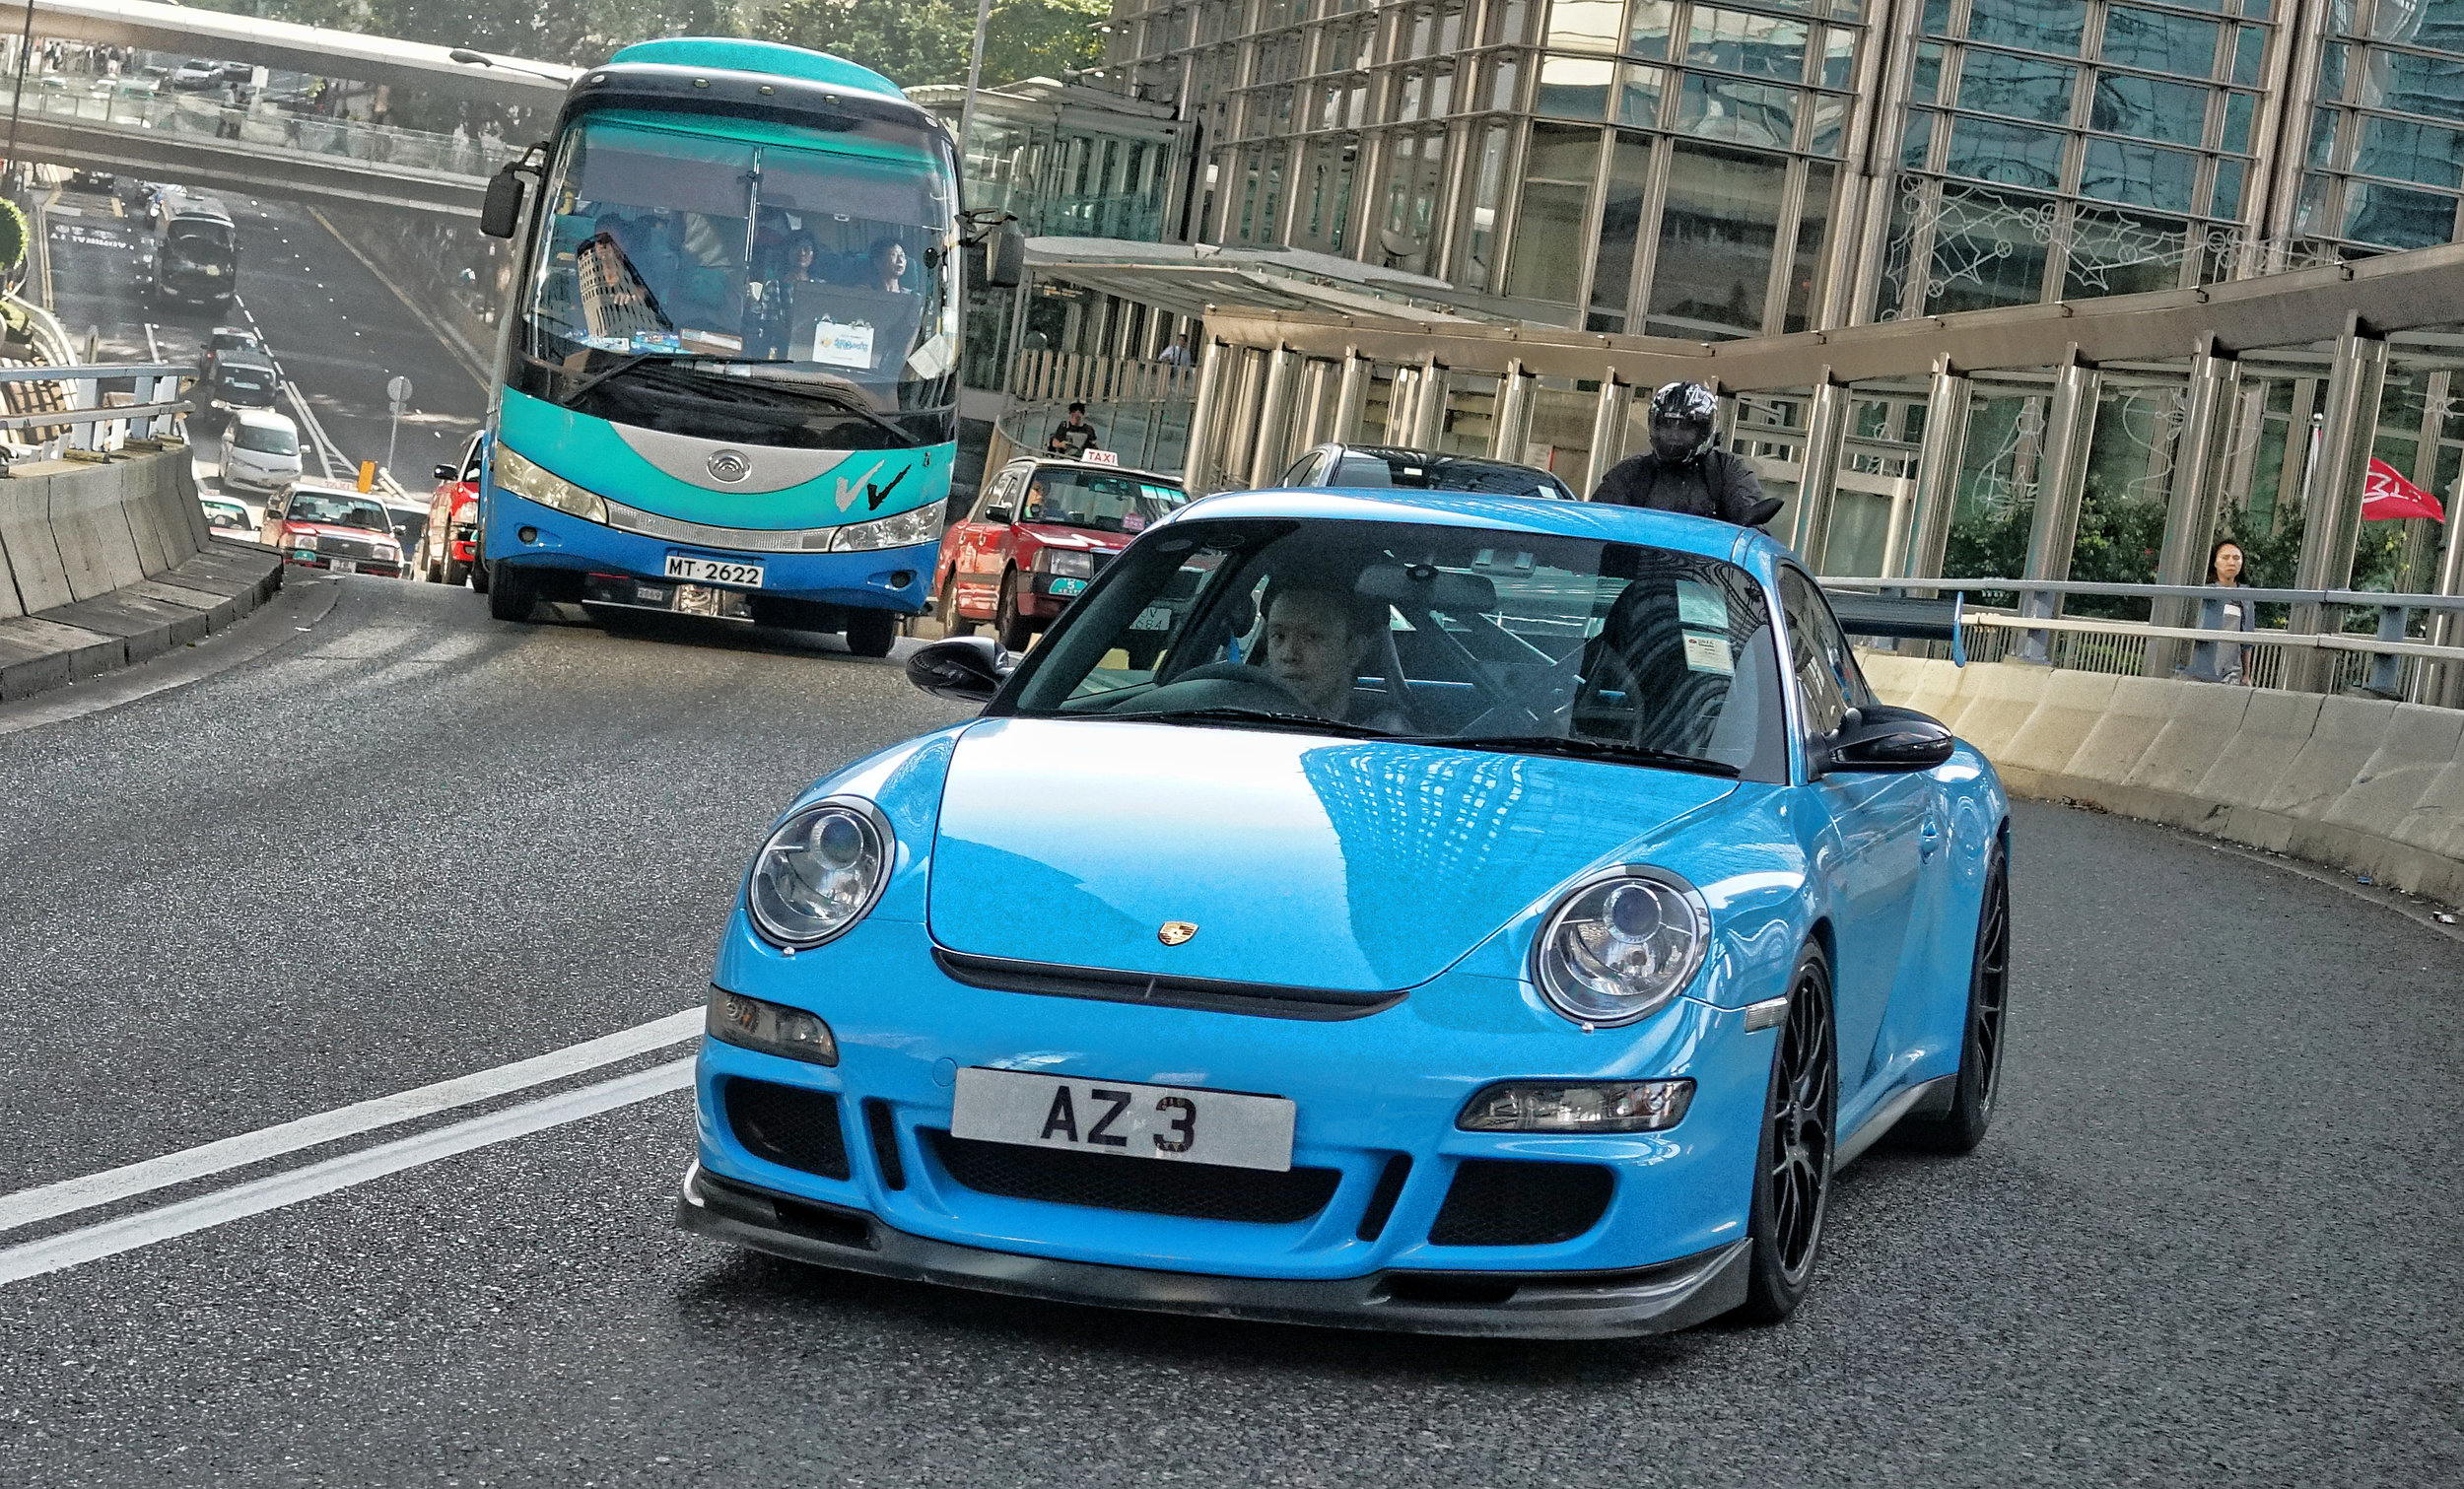 This is Arthur in his amazing blue Porsche GT3 RS I love this car.....